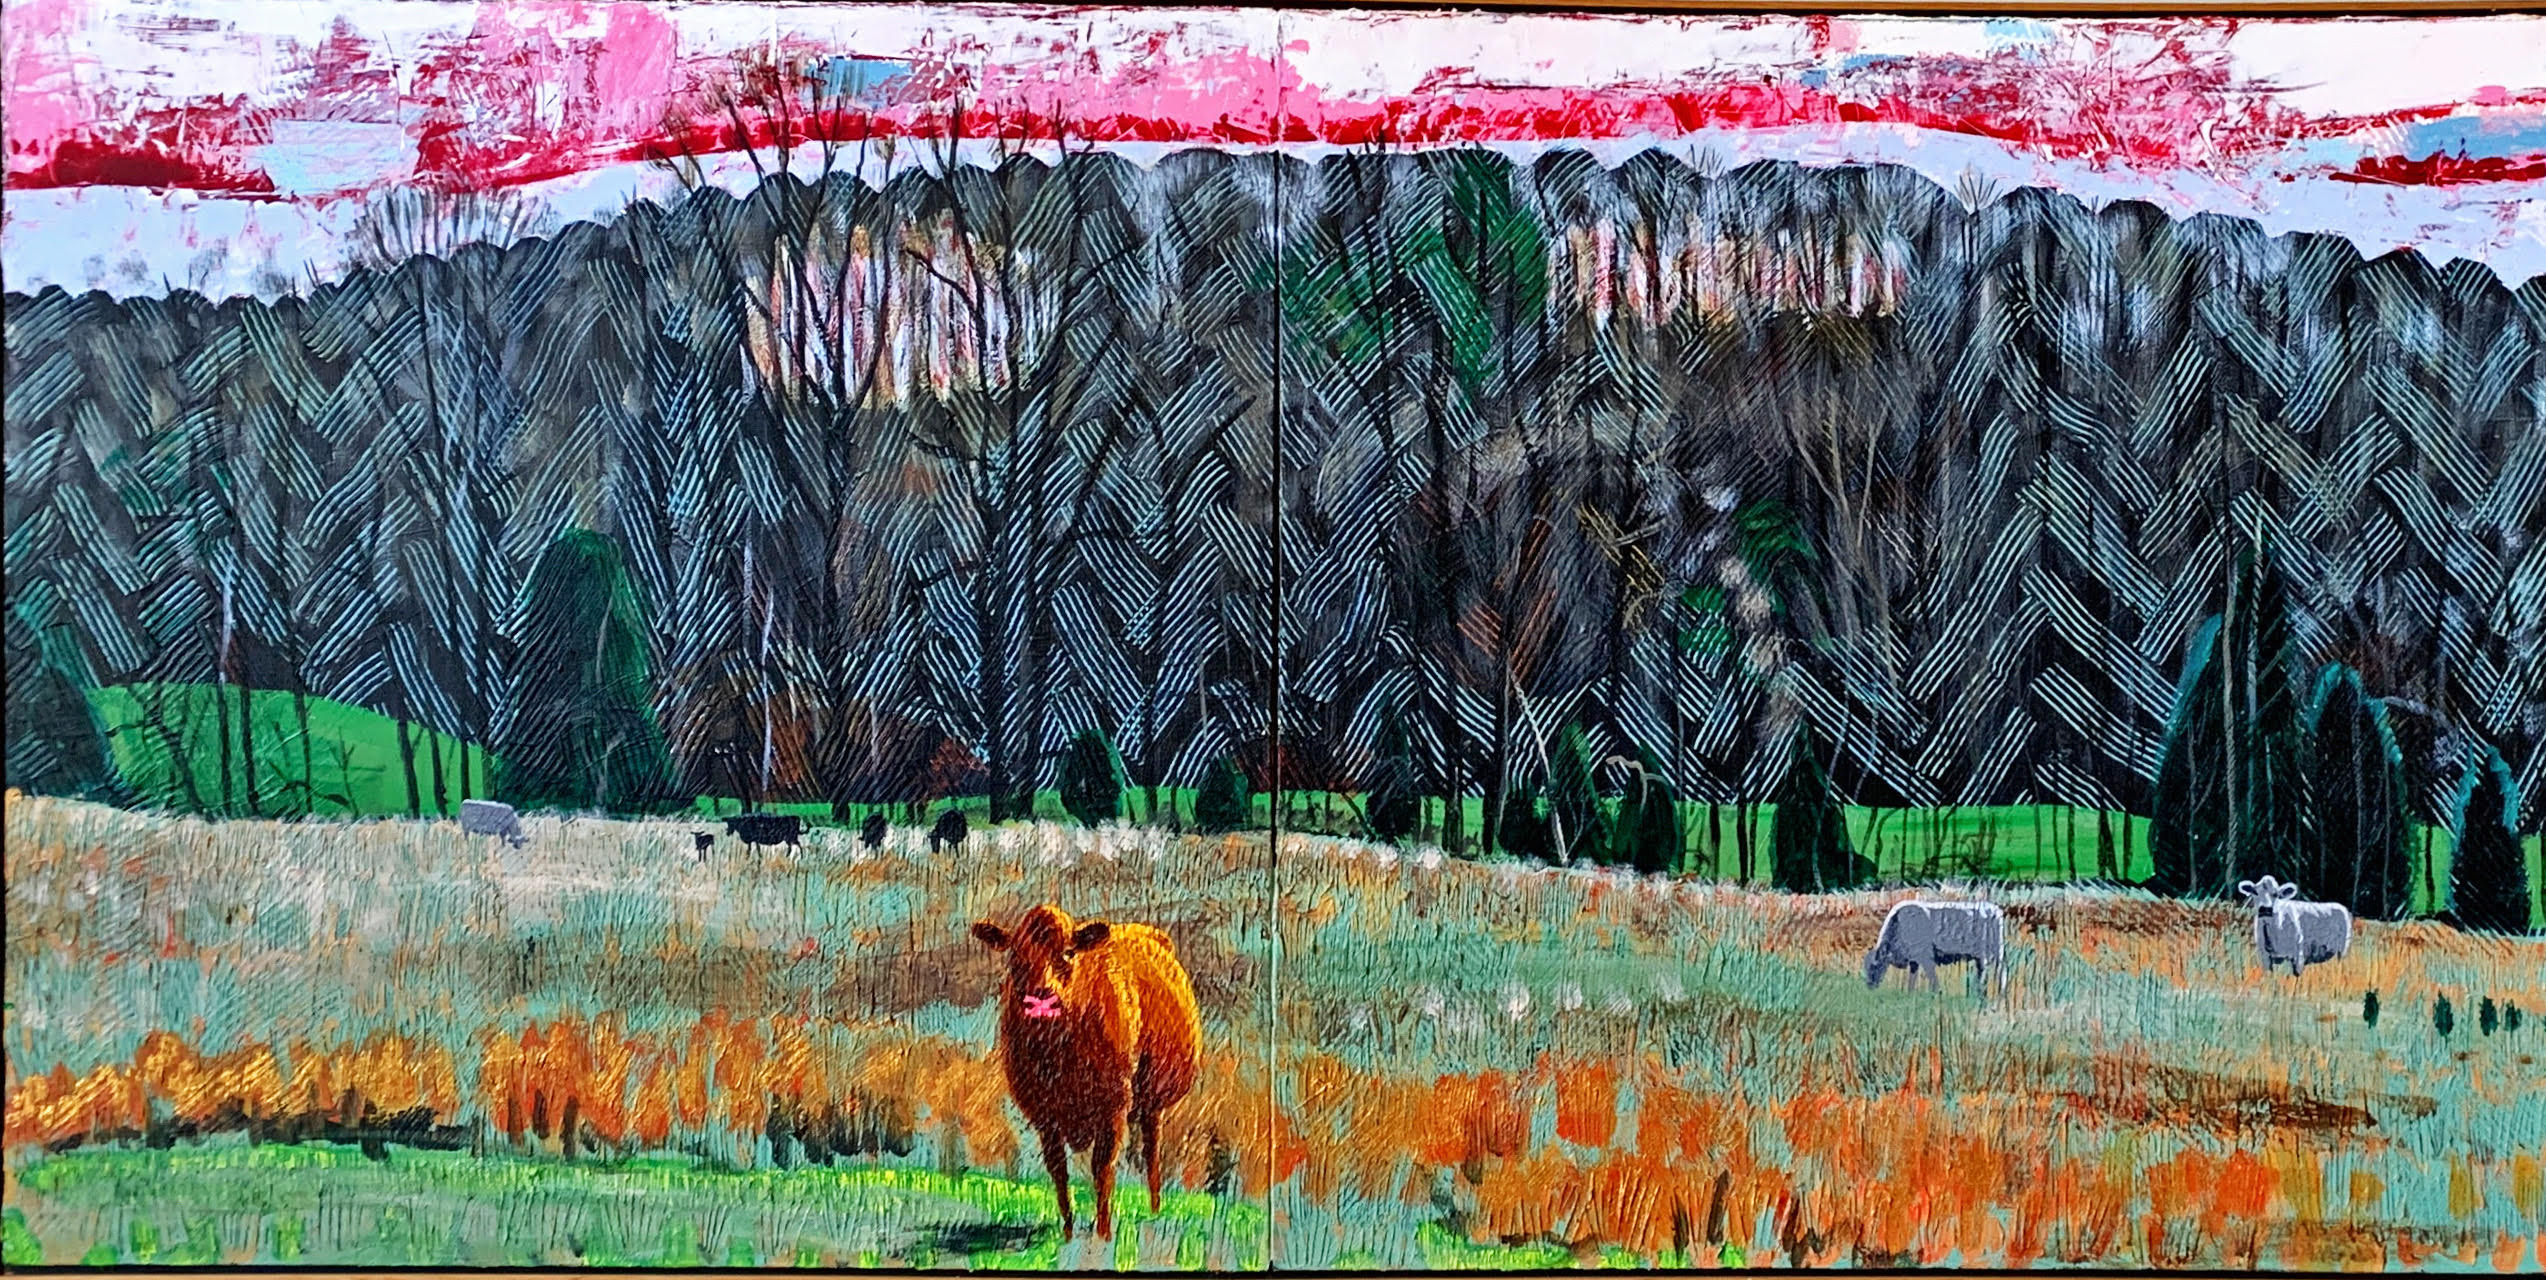 Cows in Hayfield Diptych II